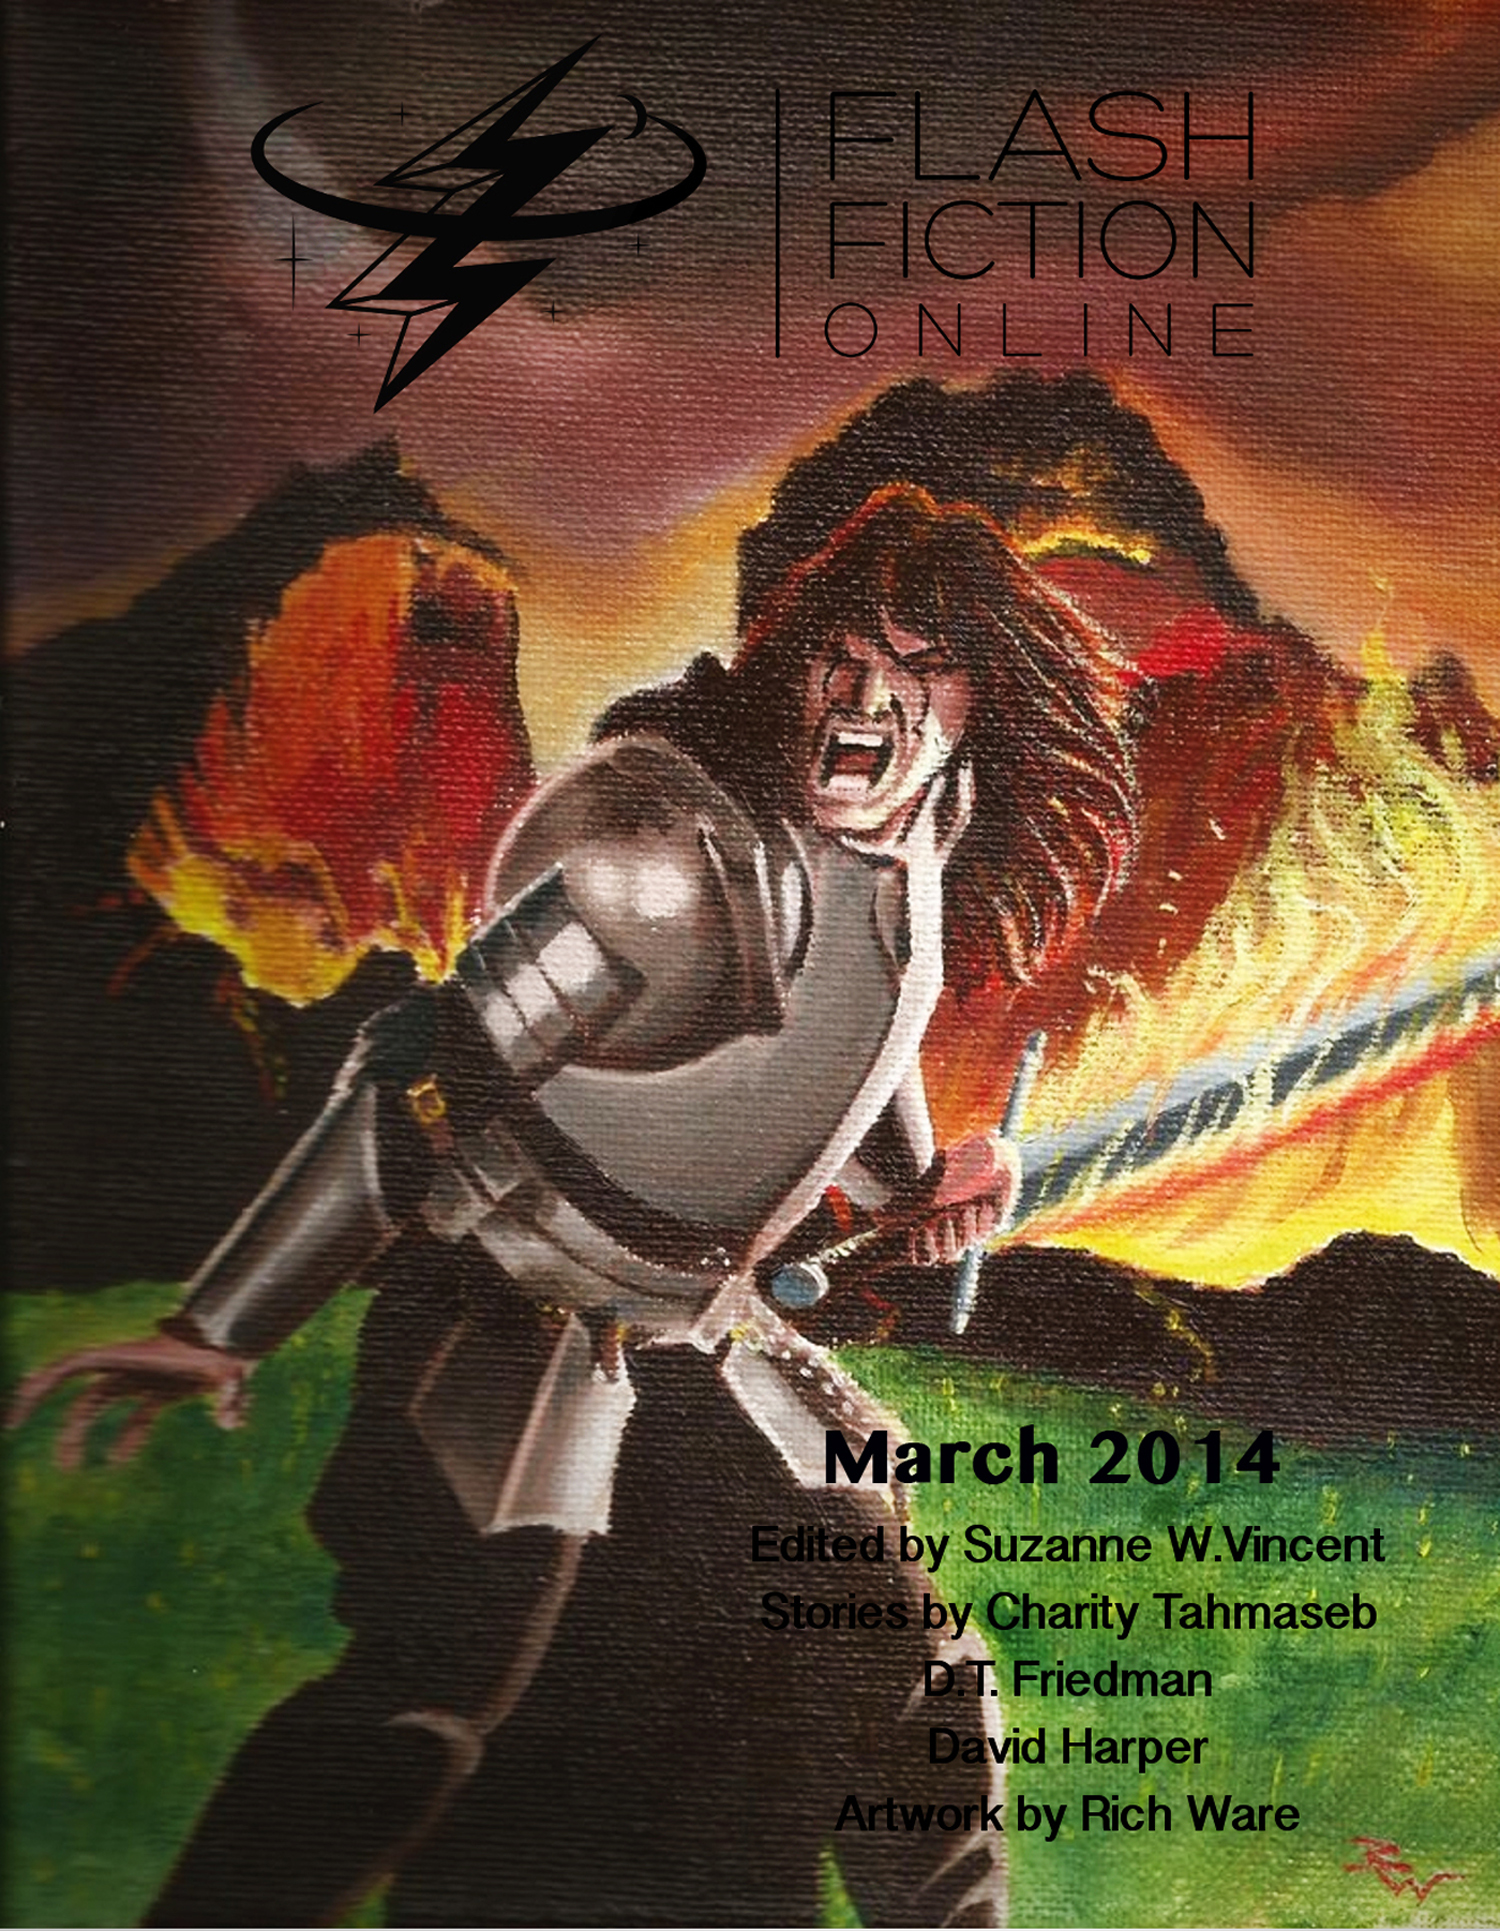 Flash Fiction Online - March 2014, an Ebook by Flash Fiction Online LLC